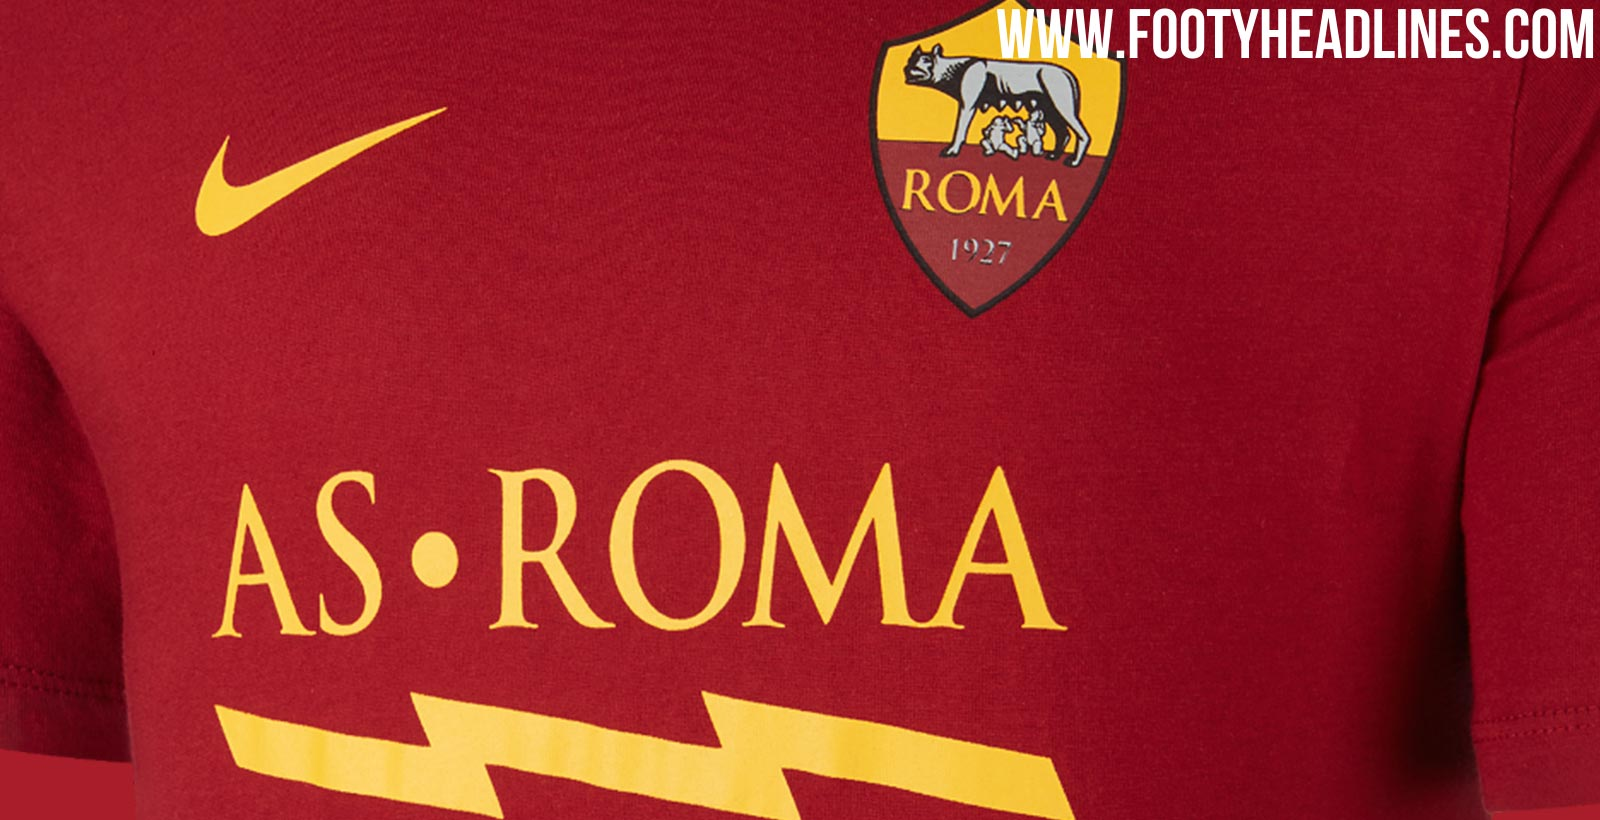 New Nike Style - Nike AS Roma 19-20 Kit T-Shirt Leaked